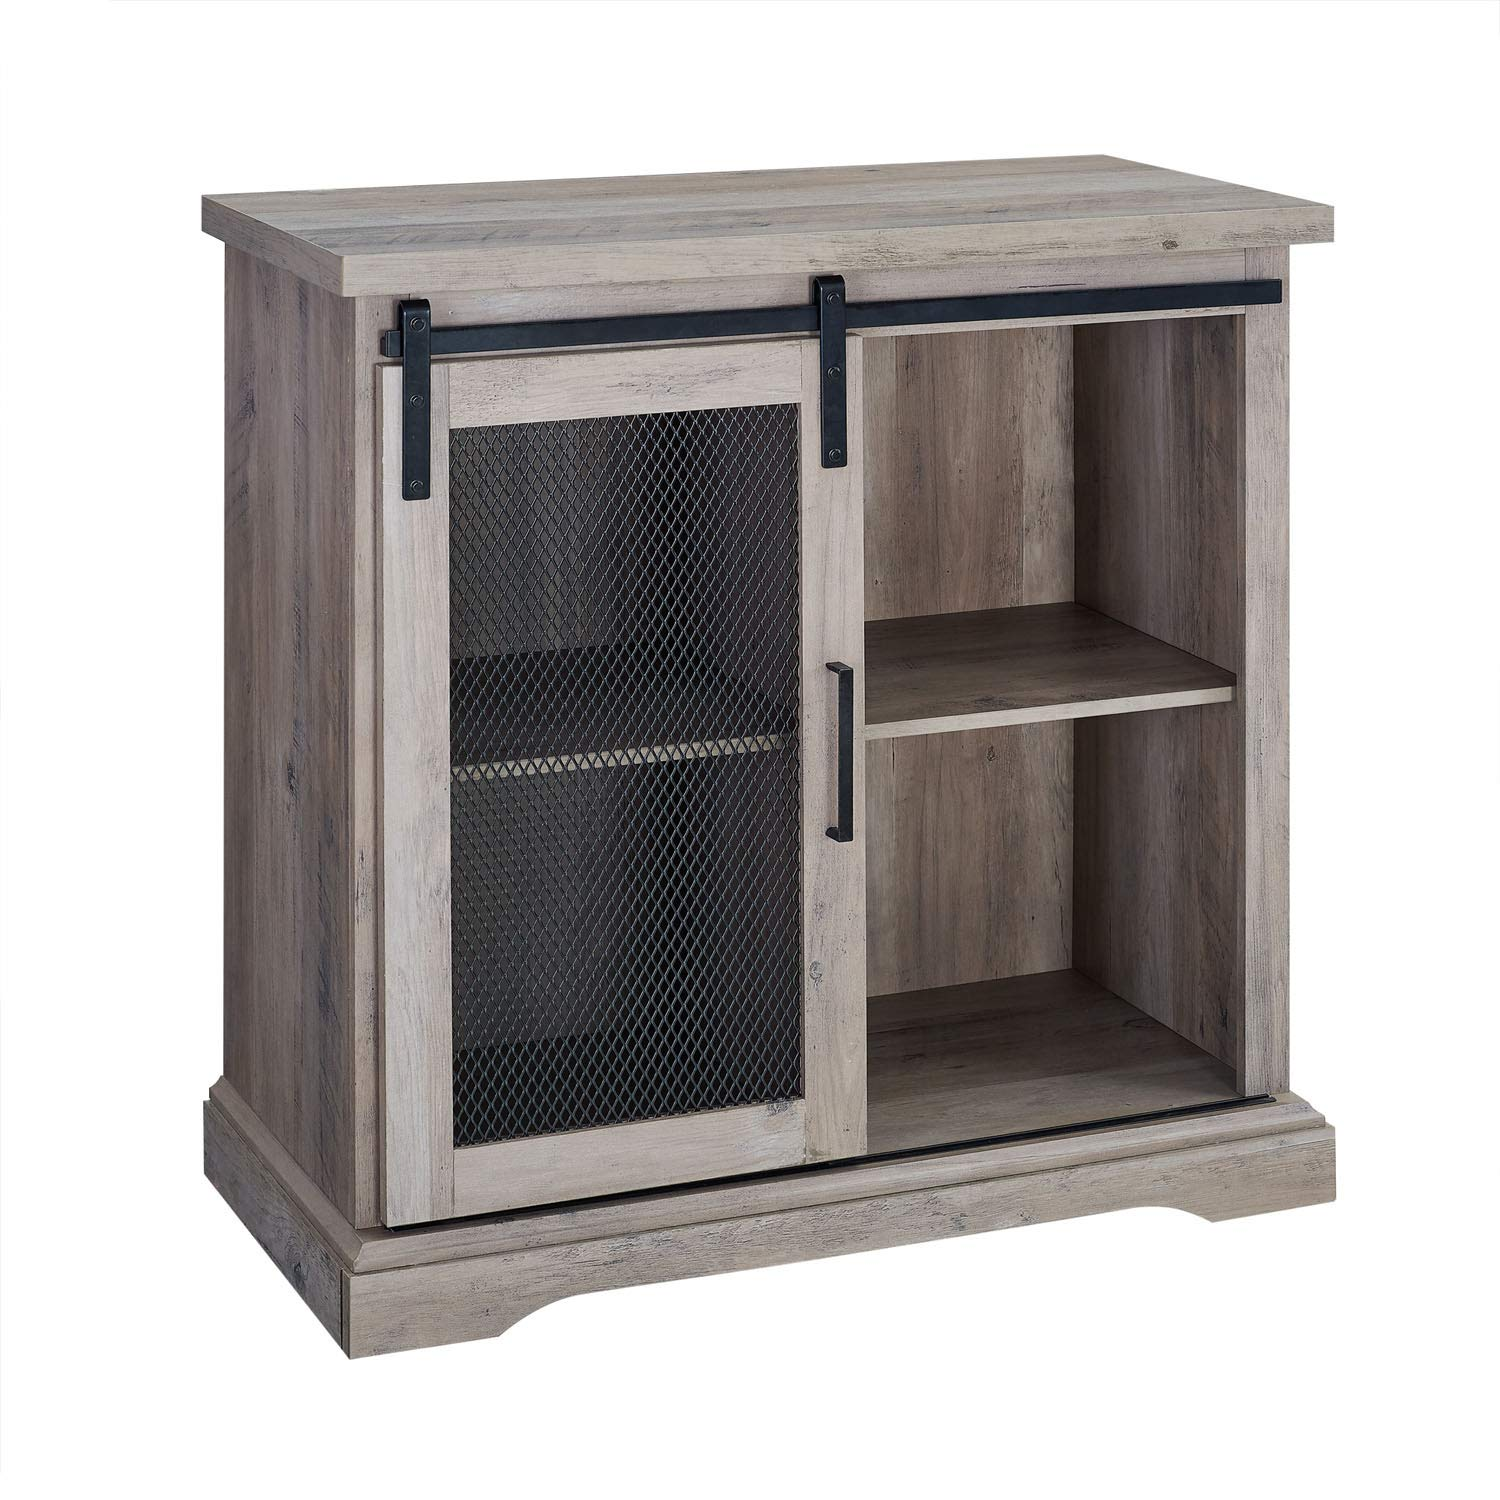 Walker Edison Furniture Company 32 Farmhouse Mesh Door Accent TV Stand – Grey Wash